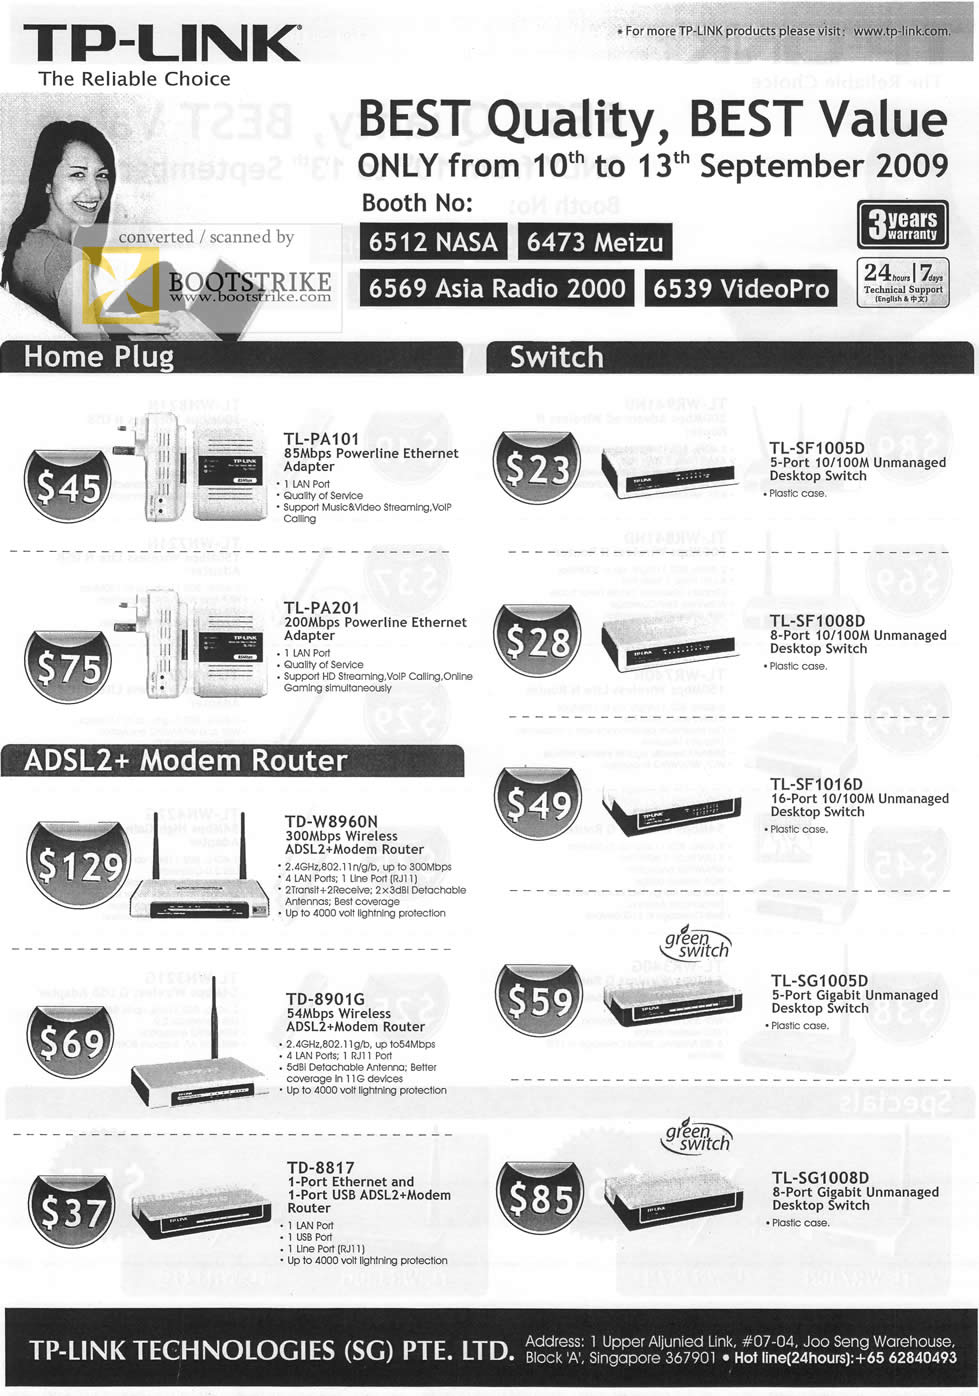 Comex 2009 price list image brochure of TP-Link Home Plug Switch ADSL2 Modem Router